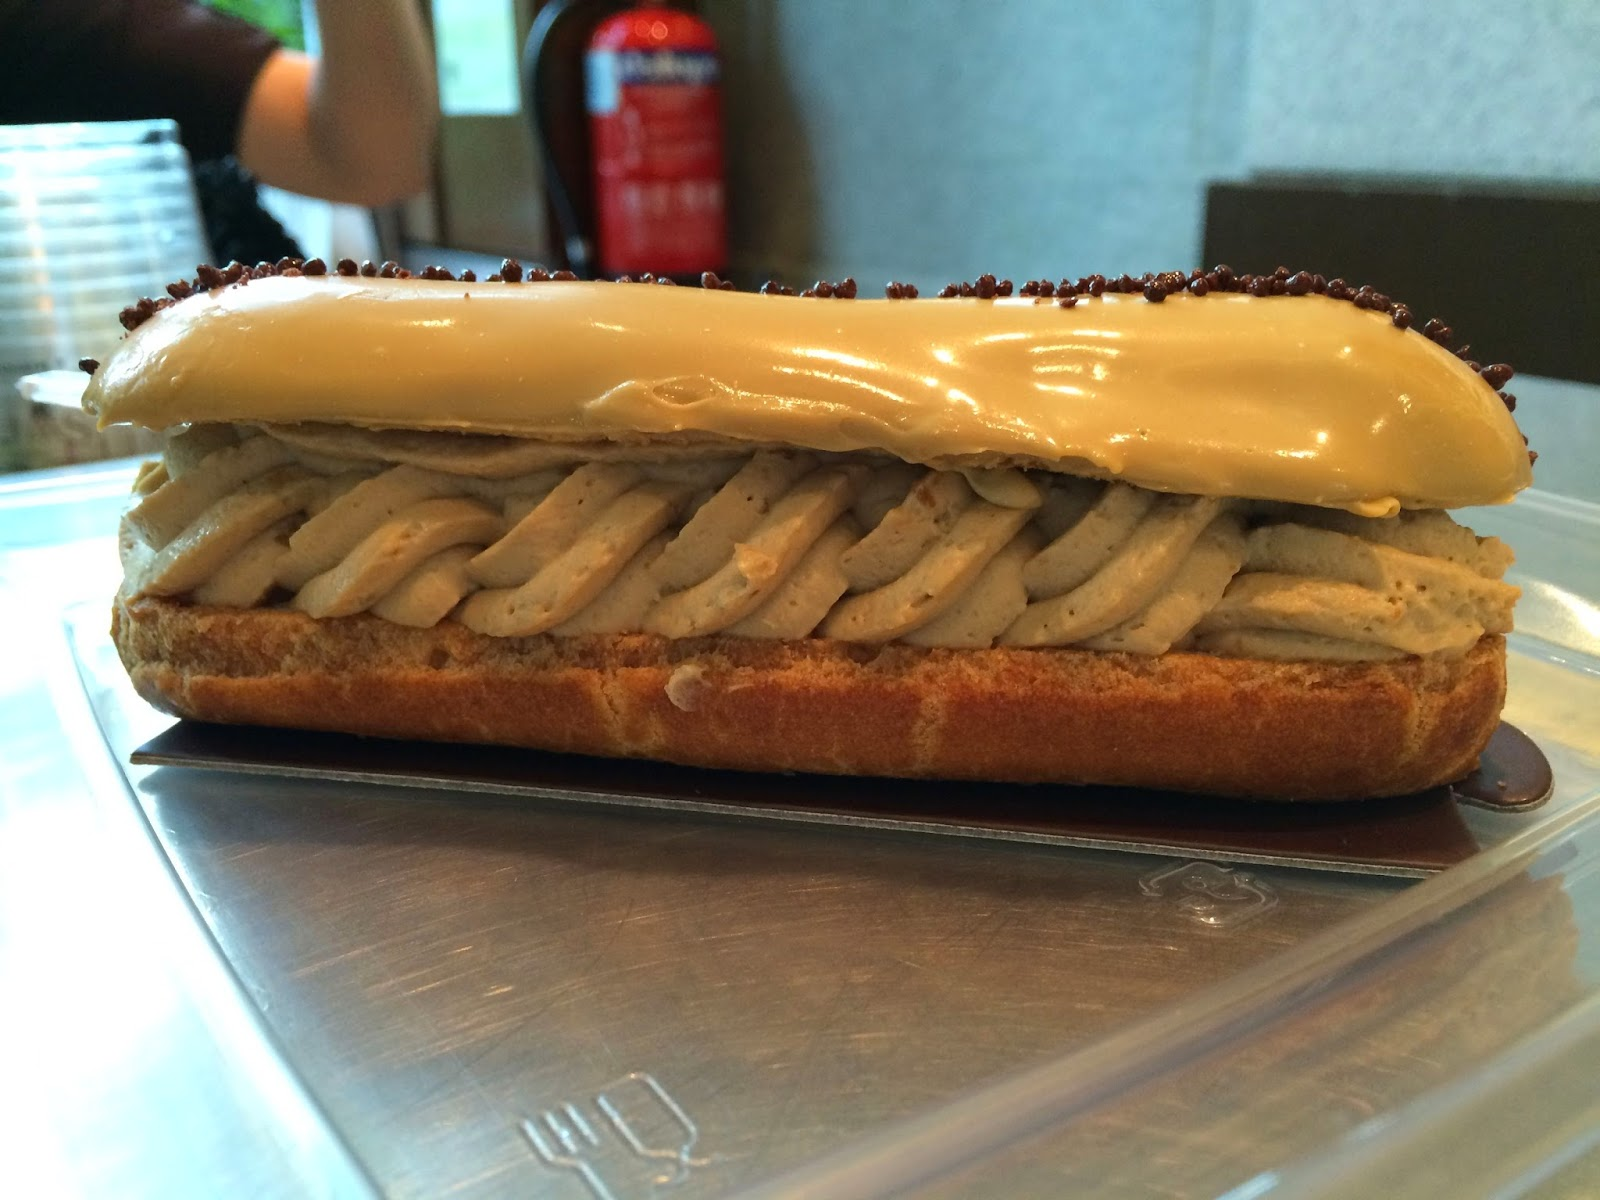 Sinful eclairs at Sweet Spot, Marina Bay Sands Singapore